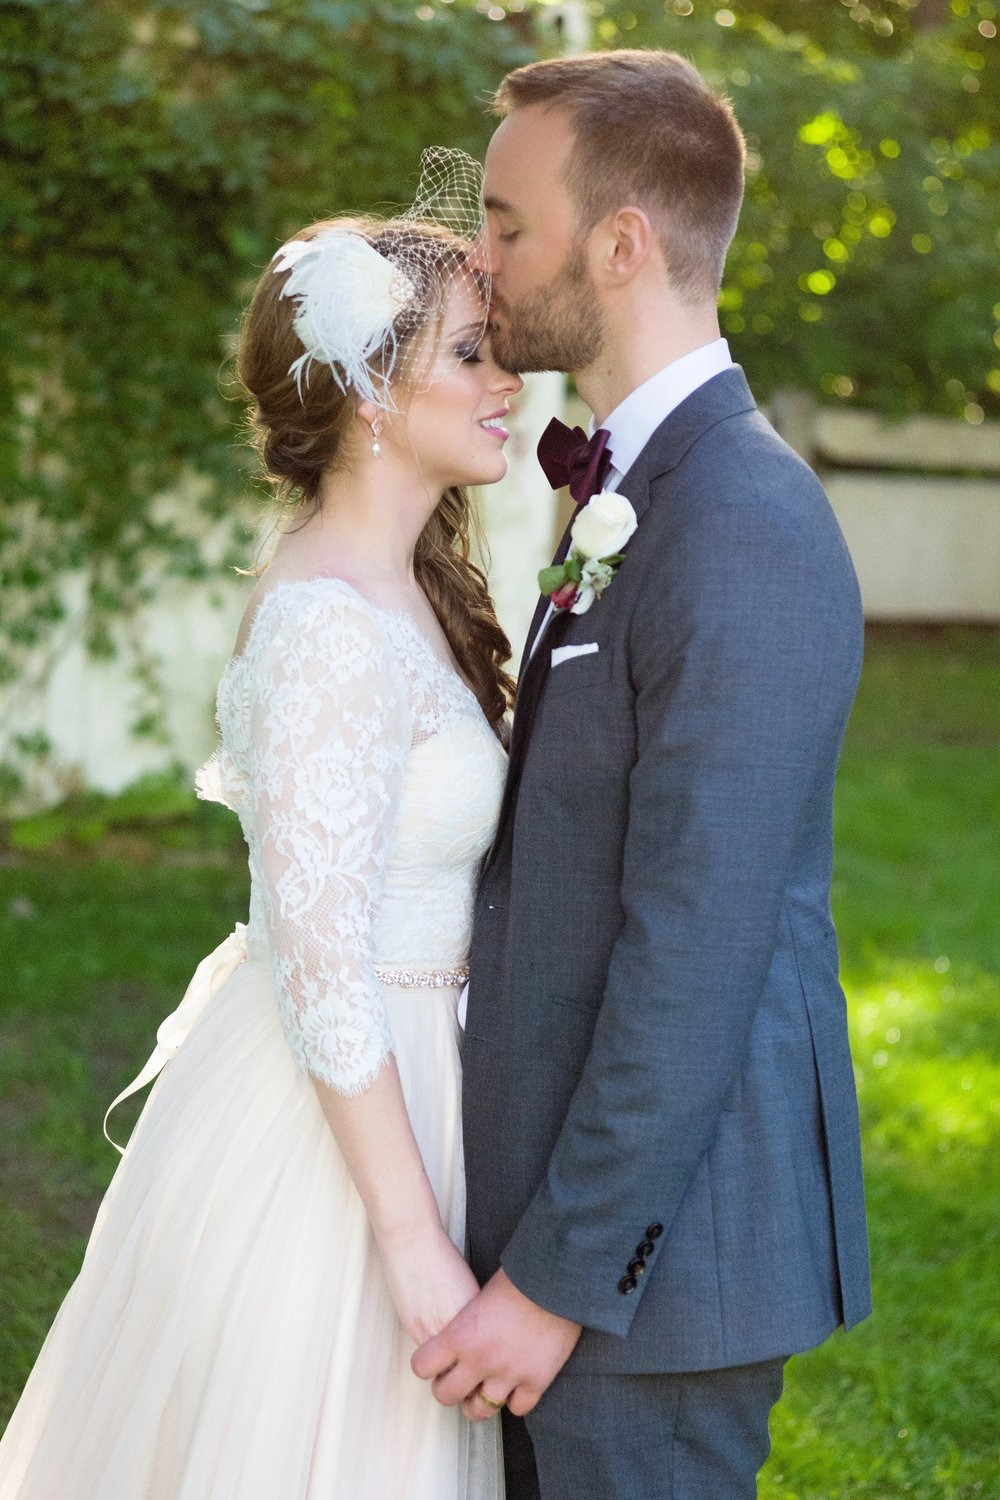 groom-kissing-bride-forehead-mike-lupine-weddings.jpg